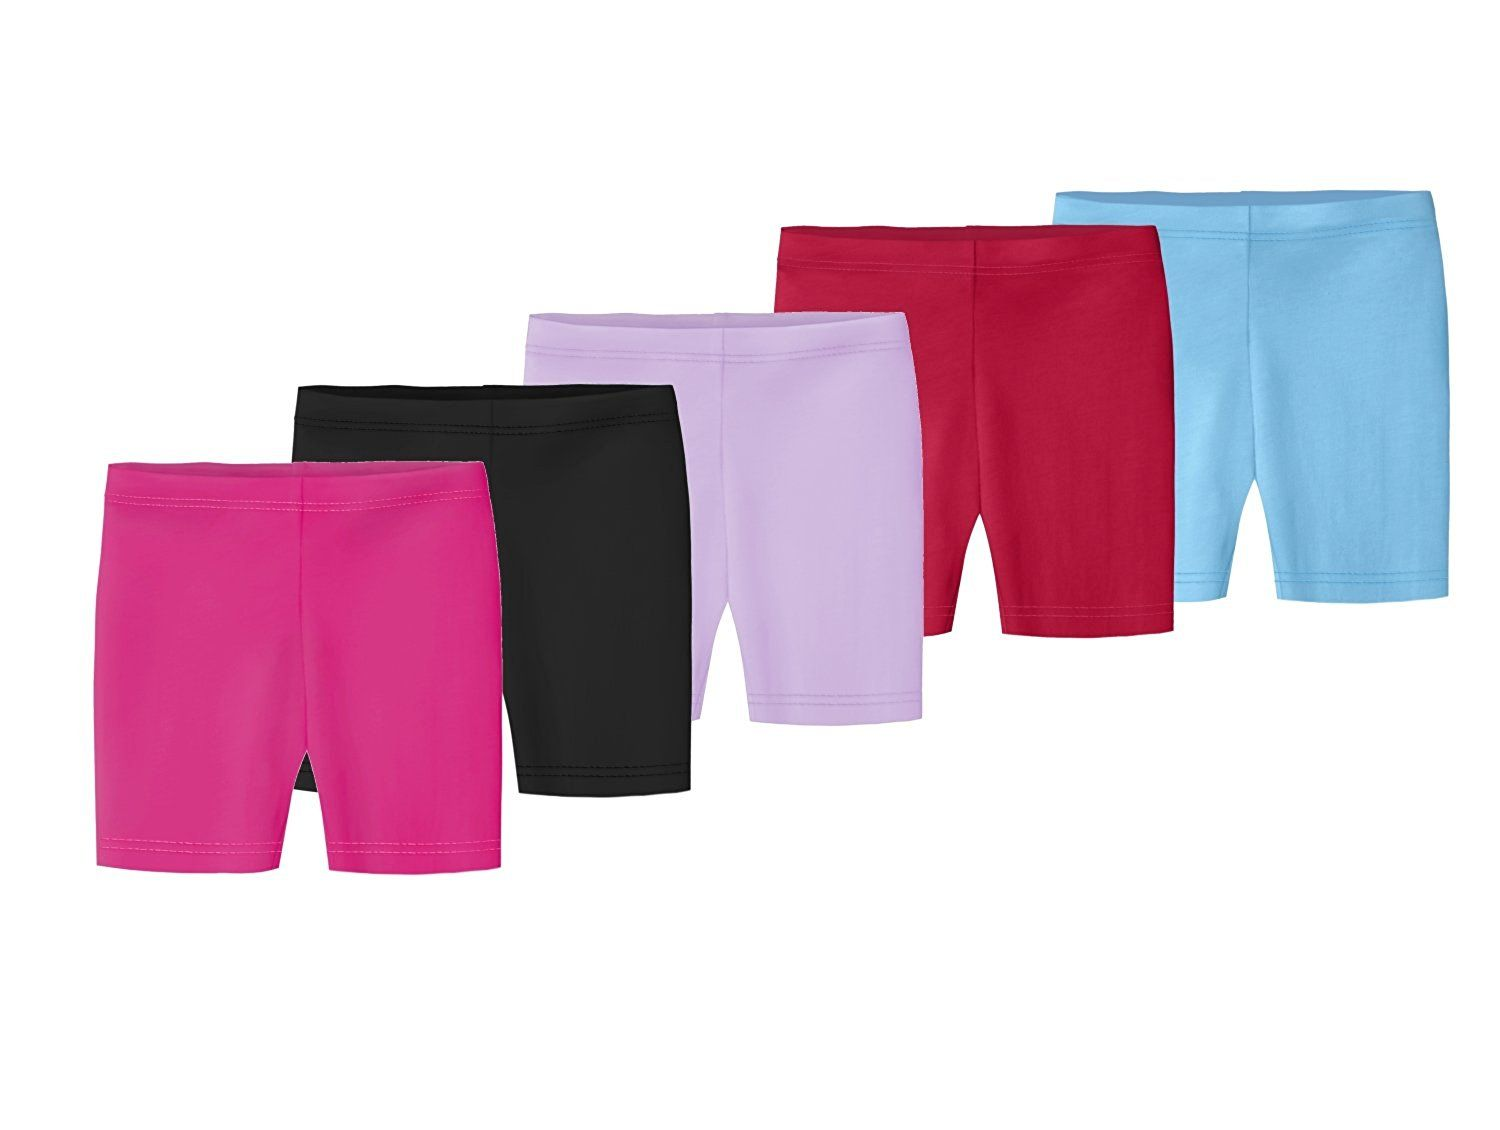 Amazon.com: City Threads Girls' 100% Cotton Bike Shorts For Sports or Under Skirts: Clothing